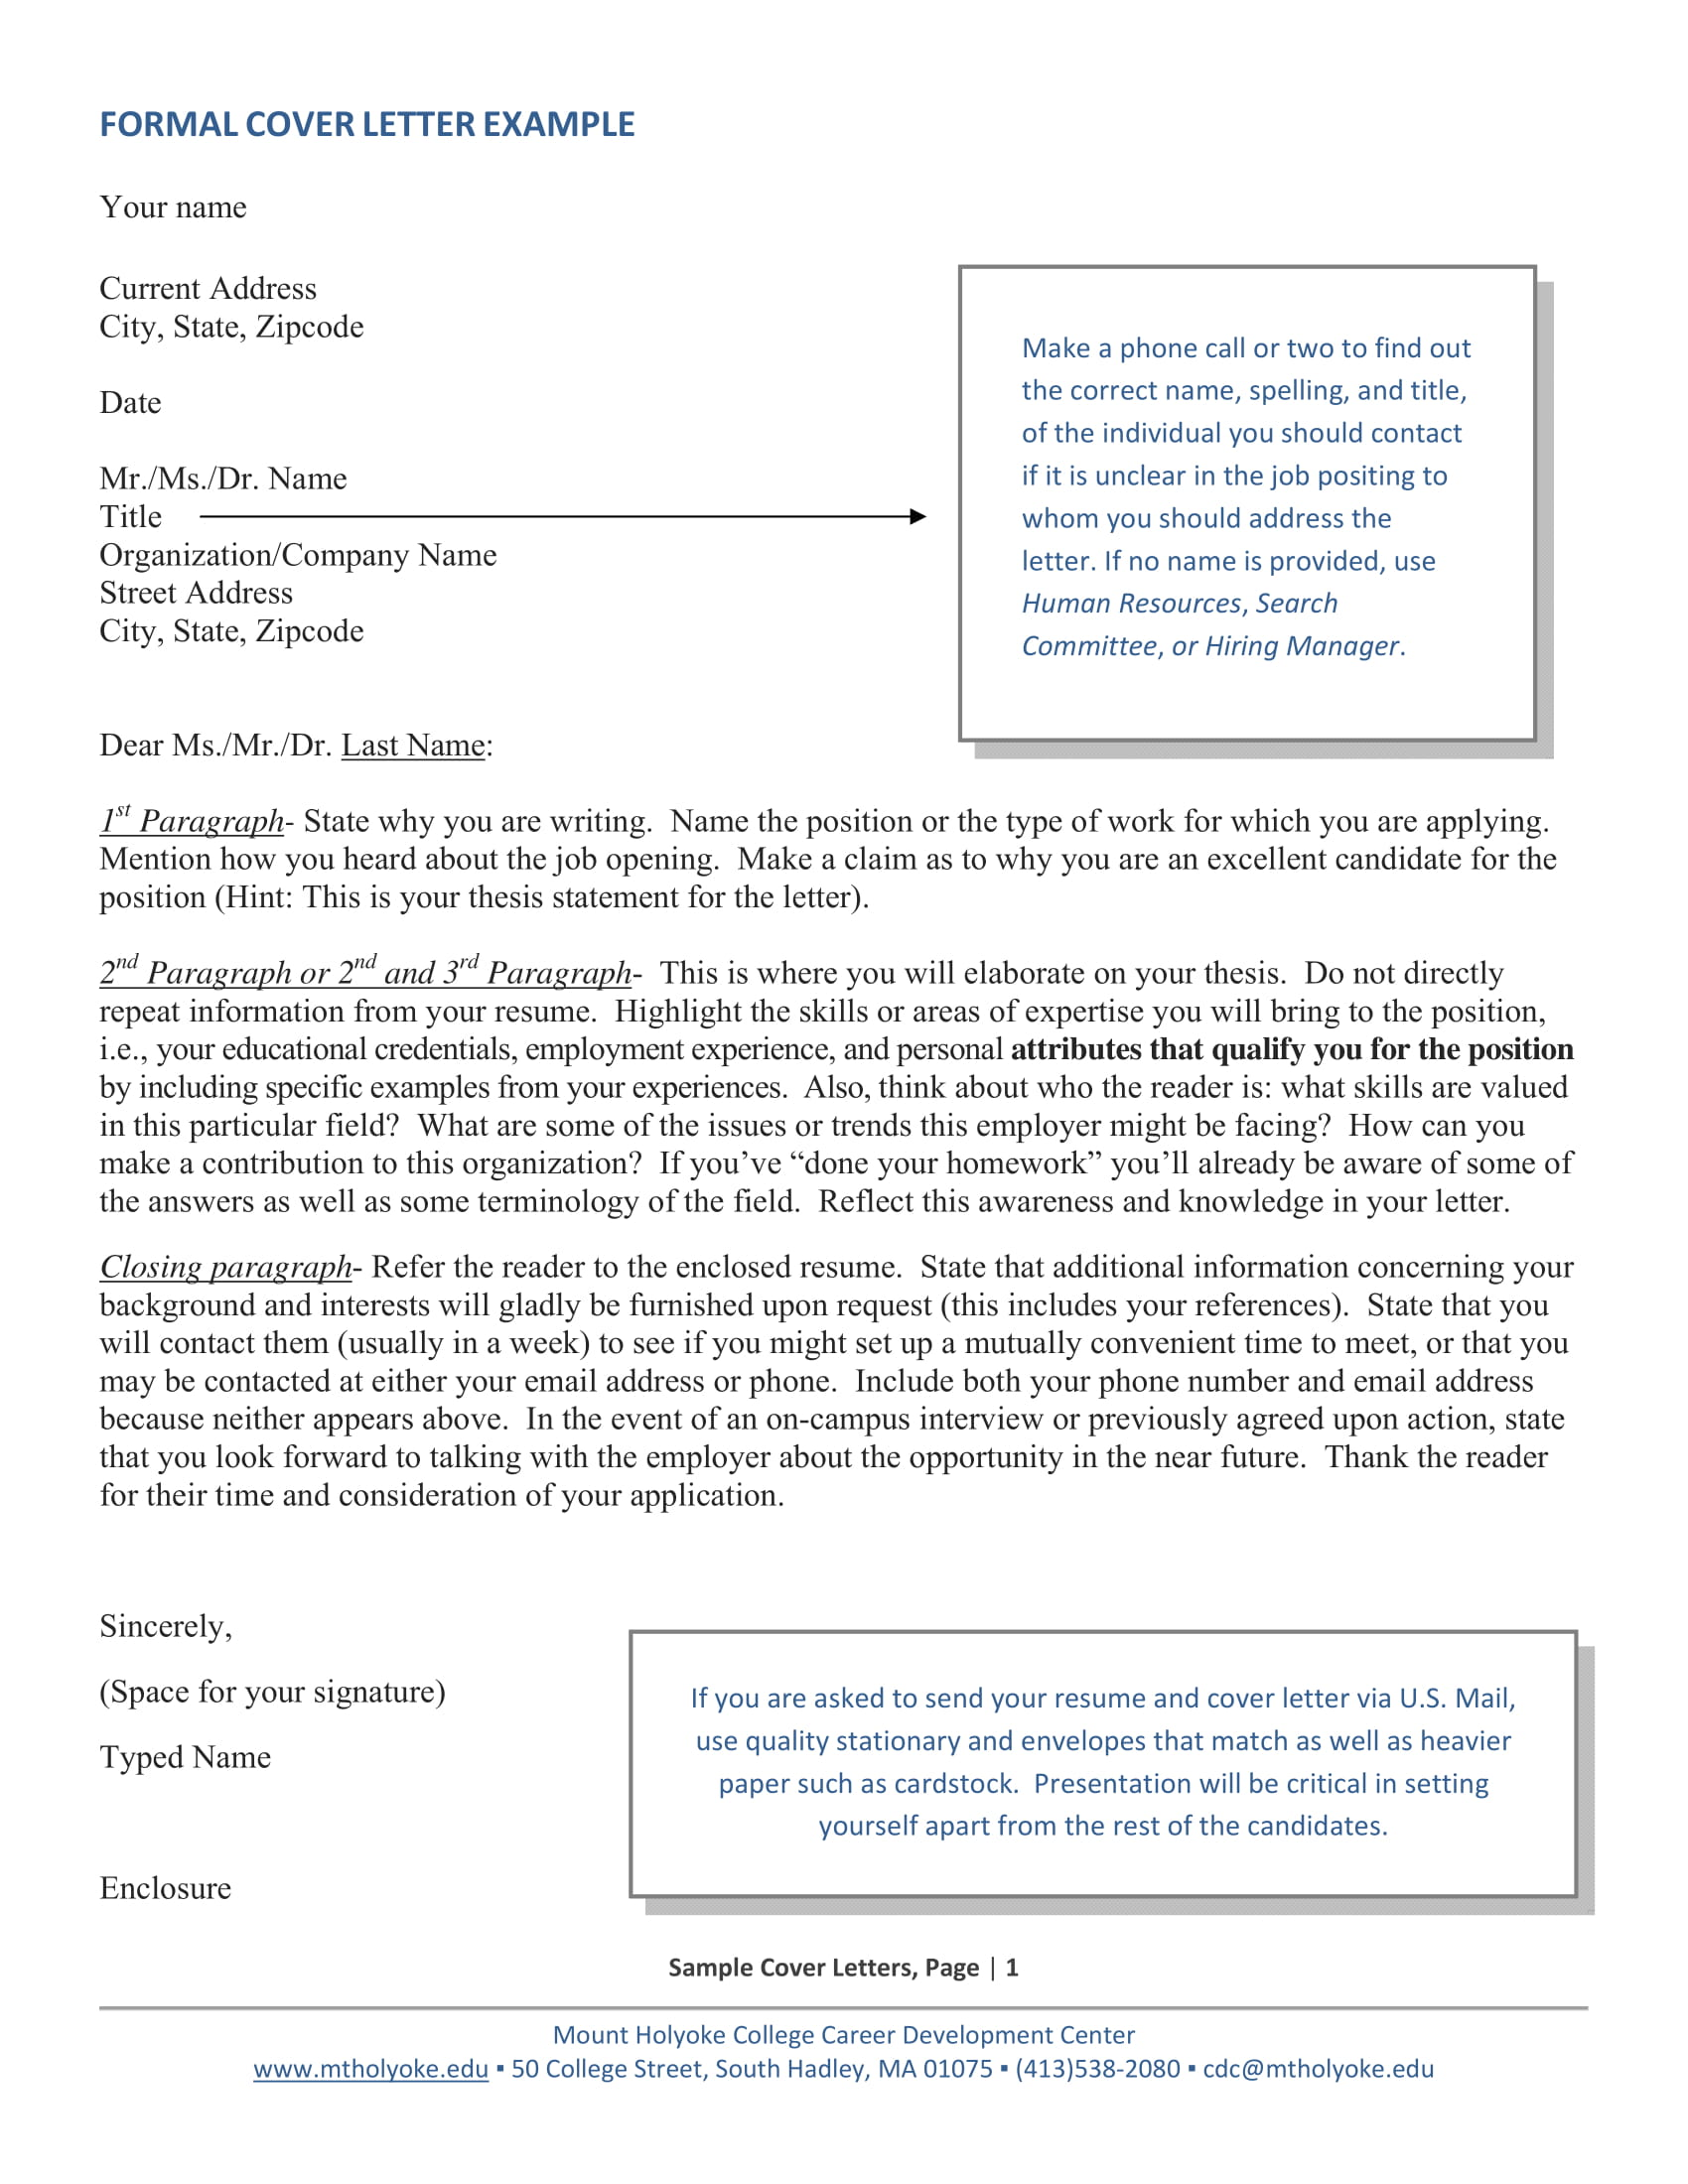 Official Cover Letter Examples  Pdf